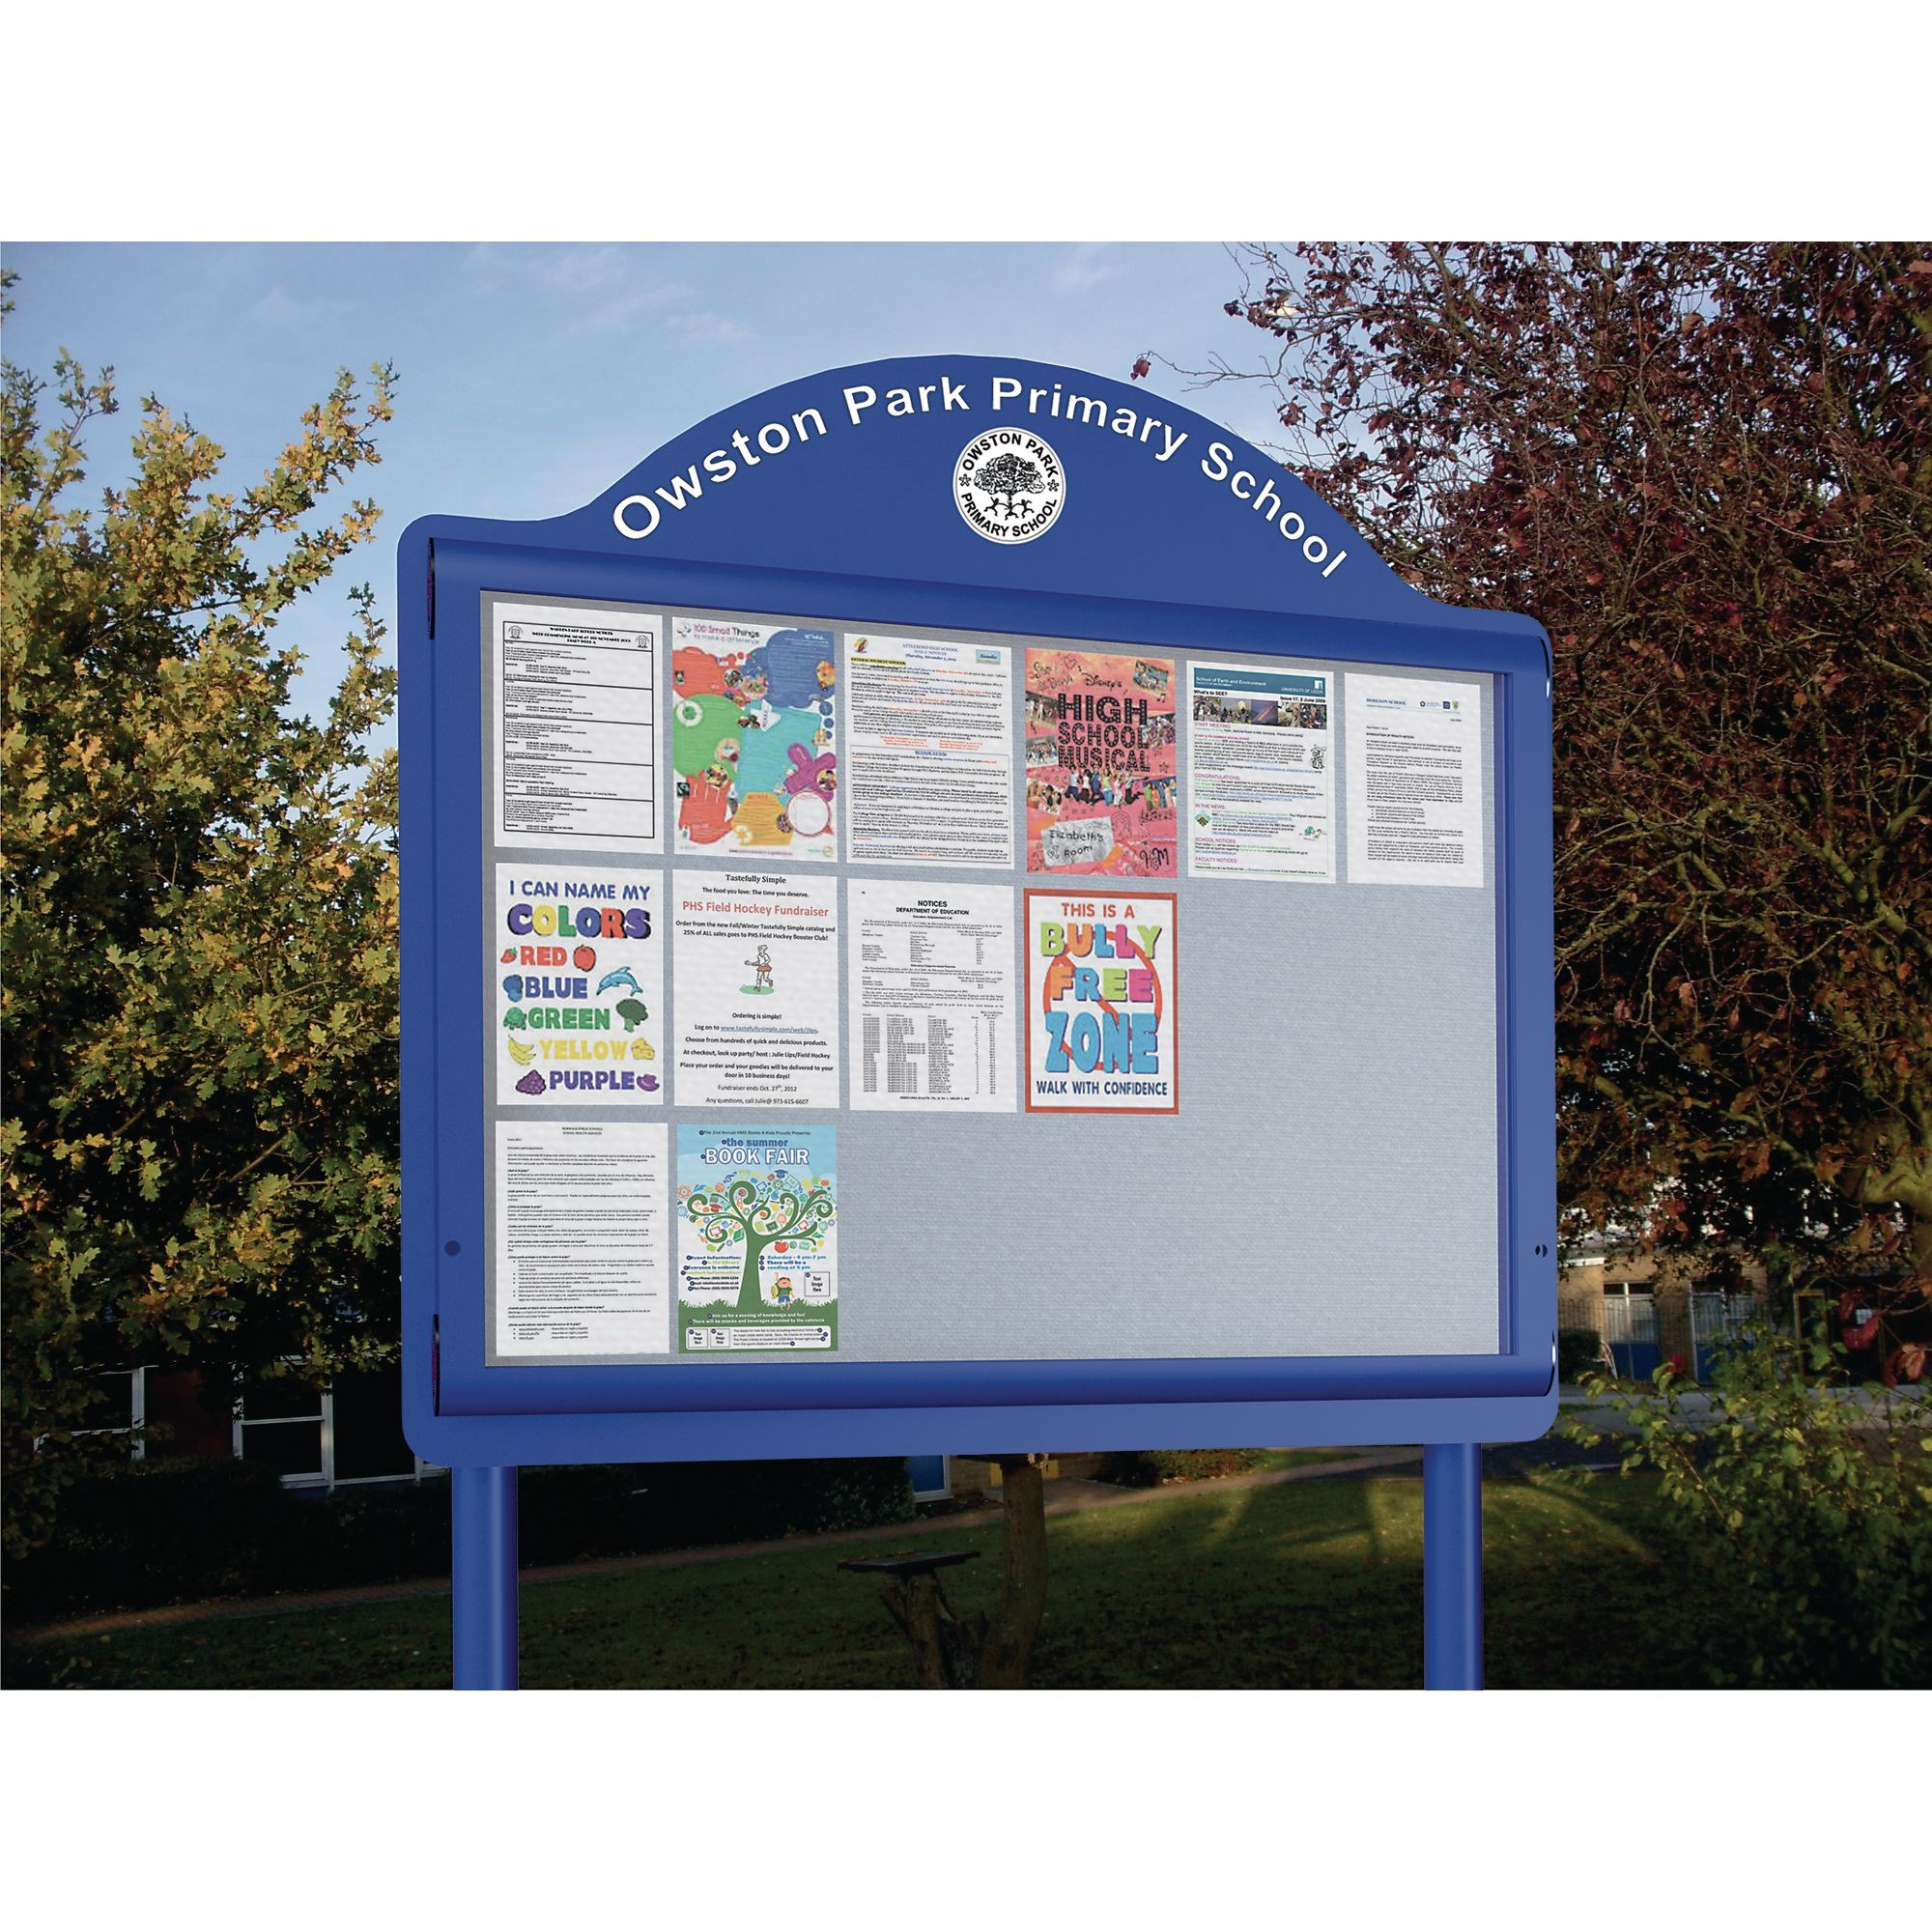 Weathershield Freestanding Contour Signage With Sunken Posts 110w X 140h Black/Green-9 x A4P